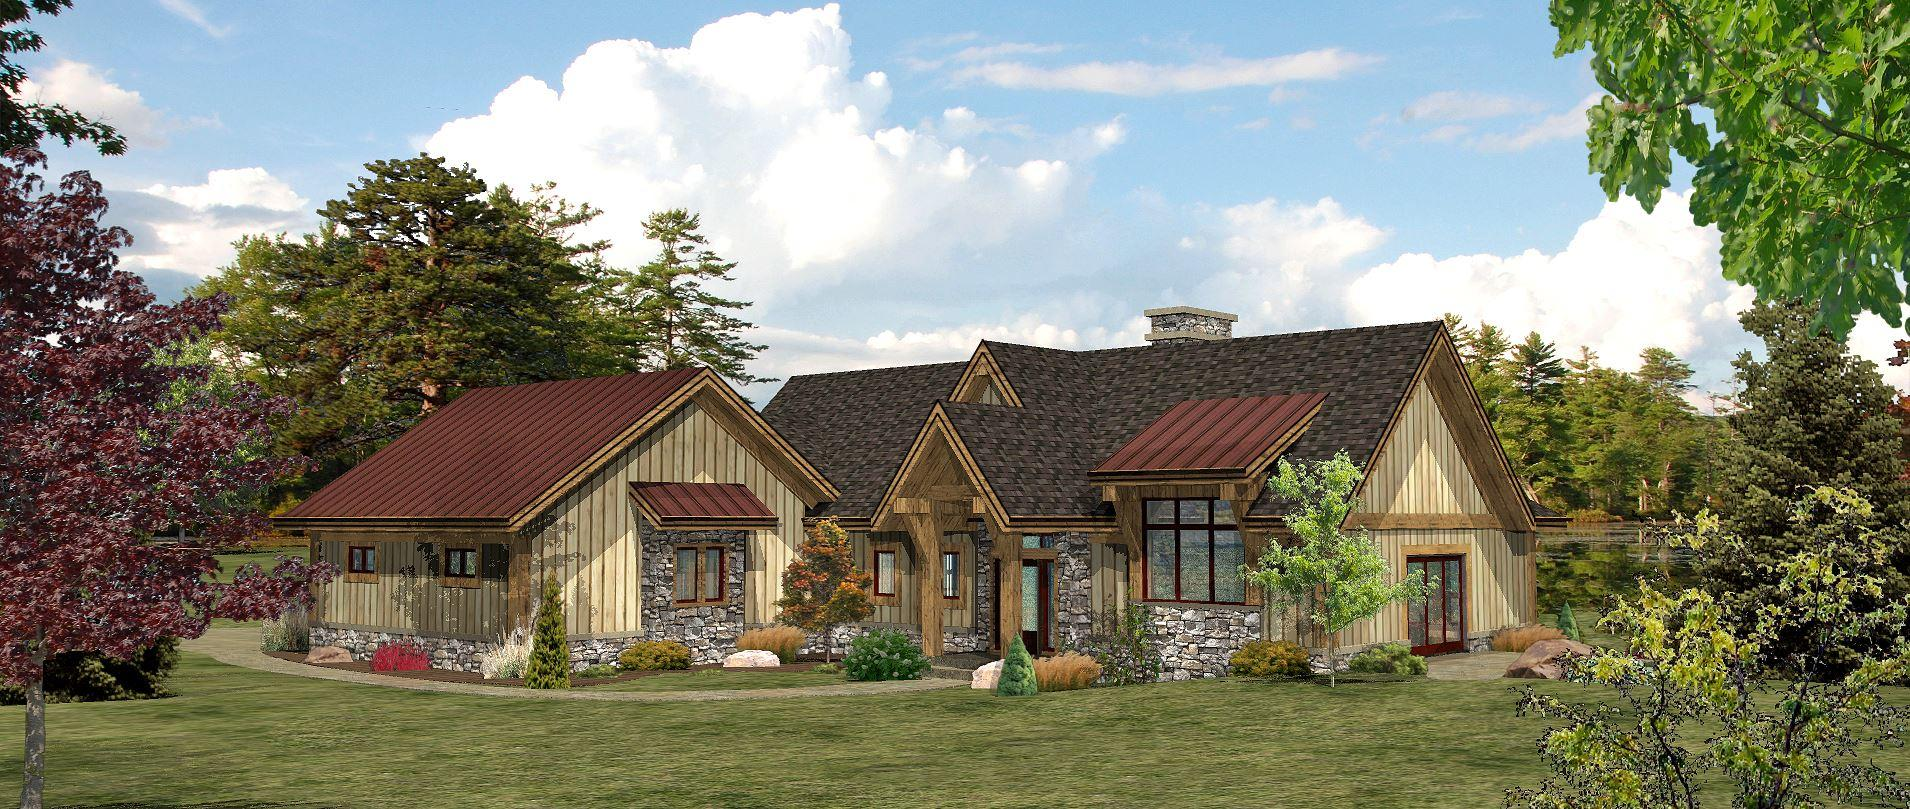 Lakefront - Front Rendering by Wisconsin Log Homes 1